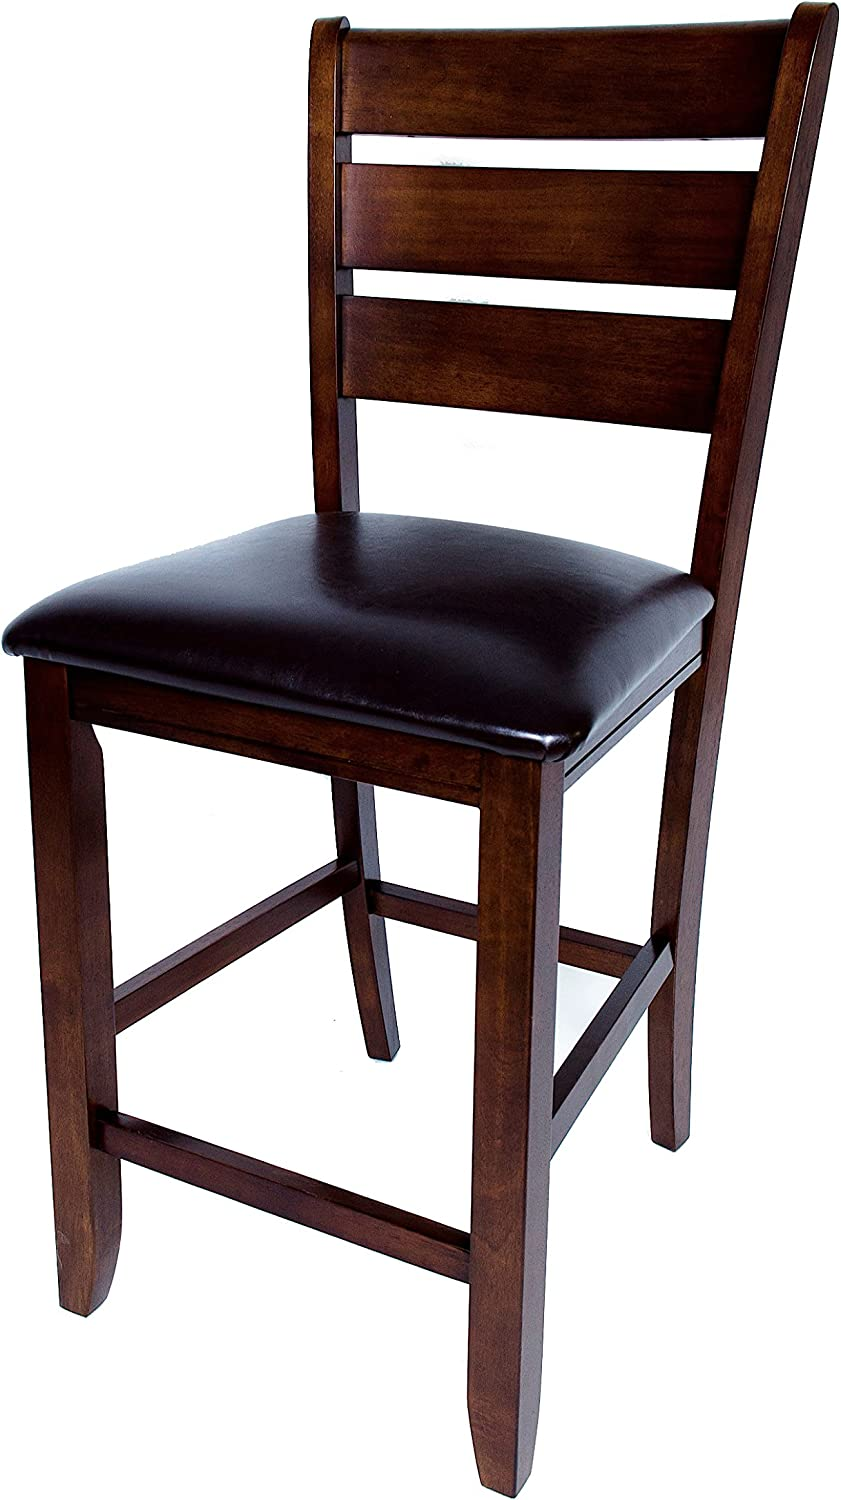 Amazon Com Aw Furniture Set Of 2 Dark Brown 24 Inch Counter Height Bar Stools Faux Leather Cushion Furniture Decor